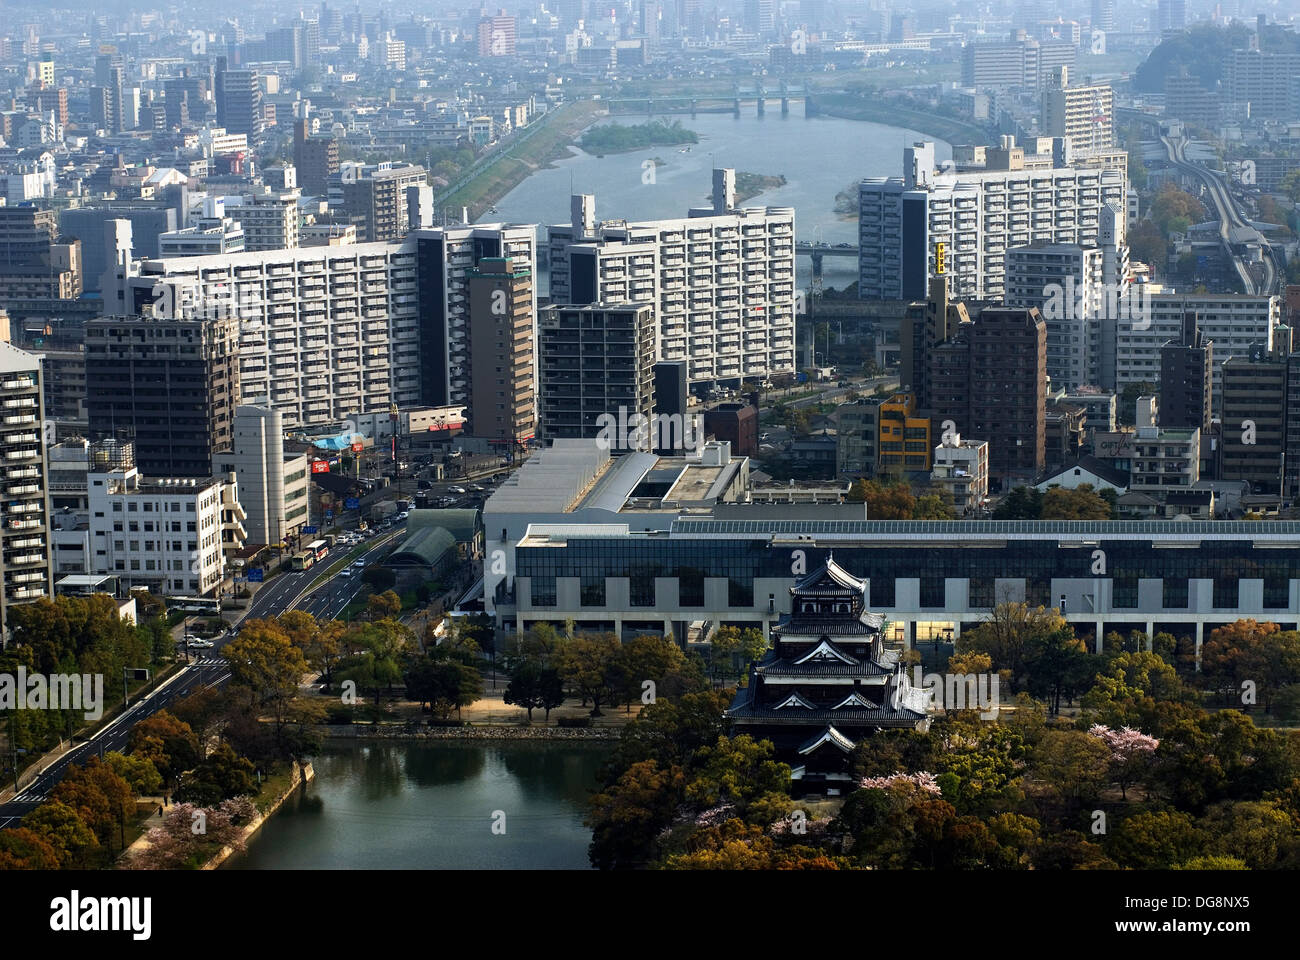 Feudal castle in the center of Hiroshima city Japan - Stock Image